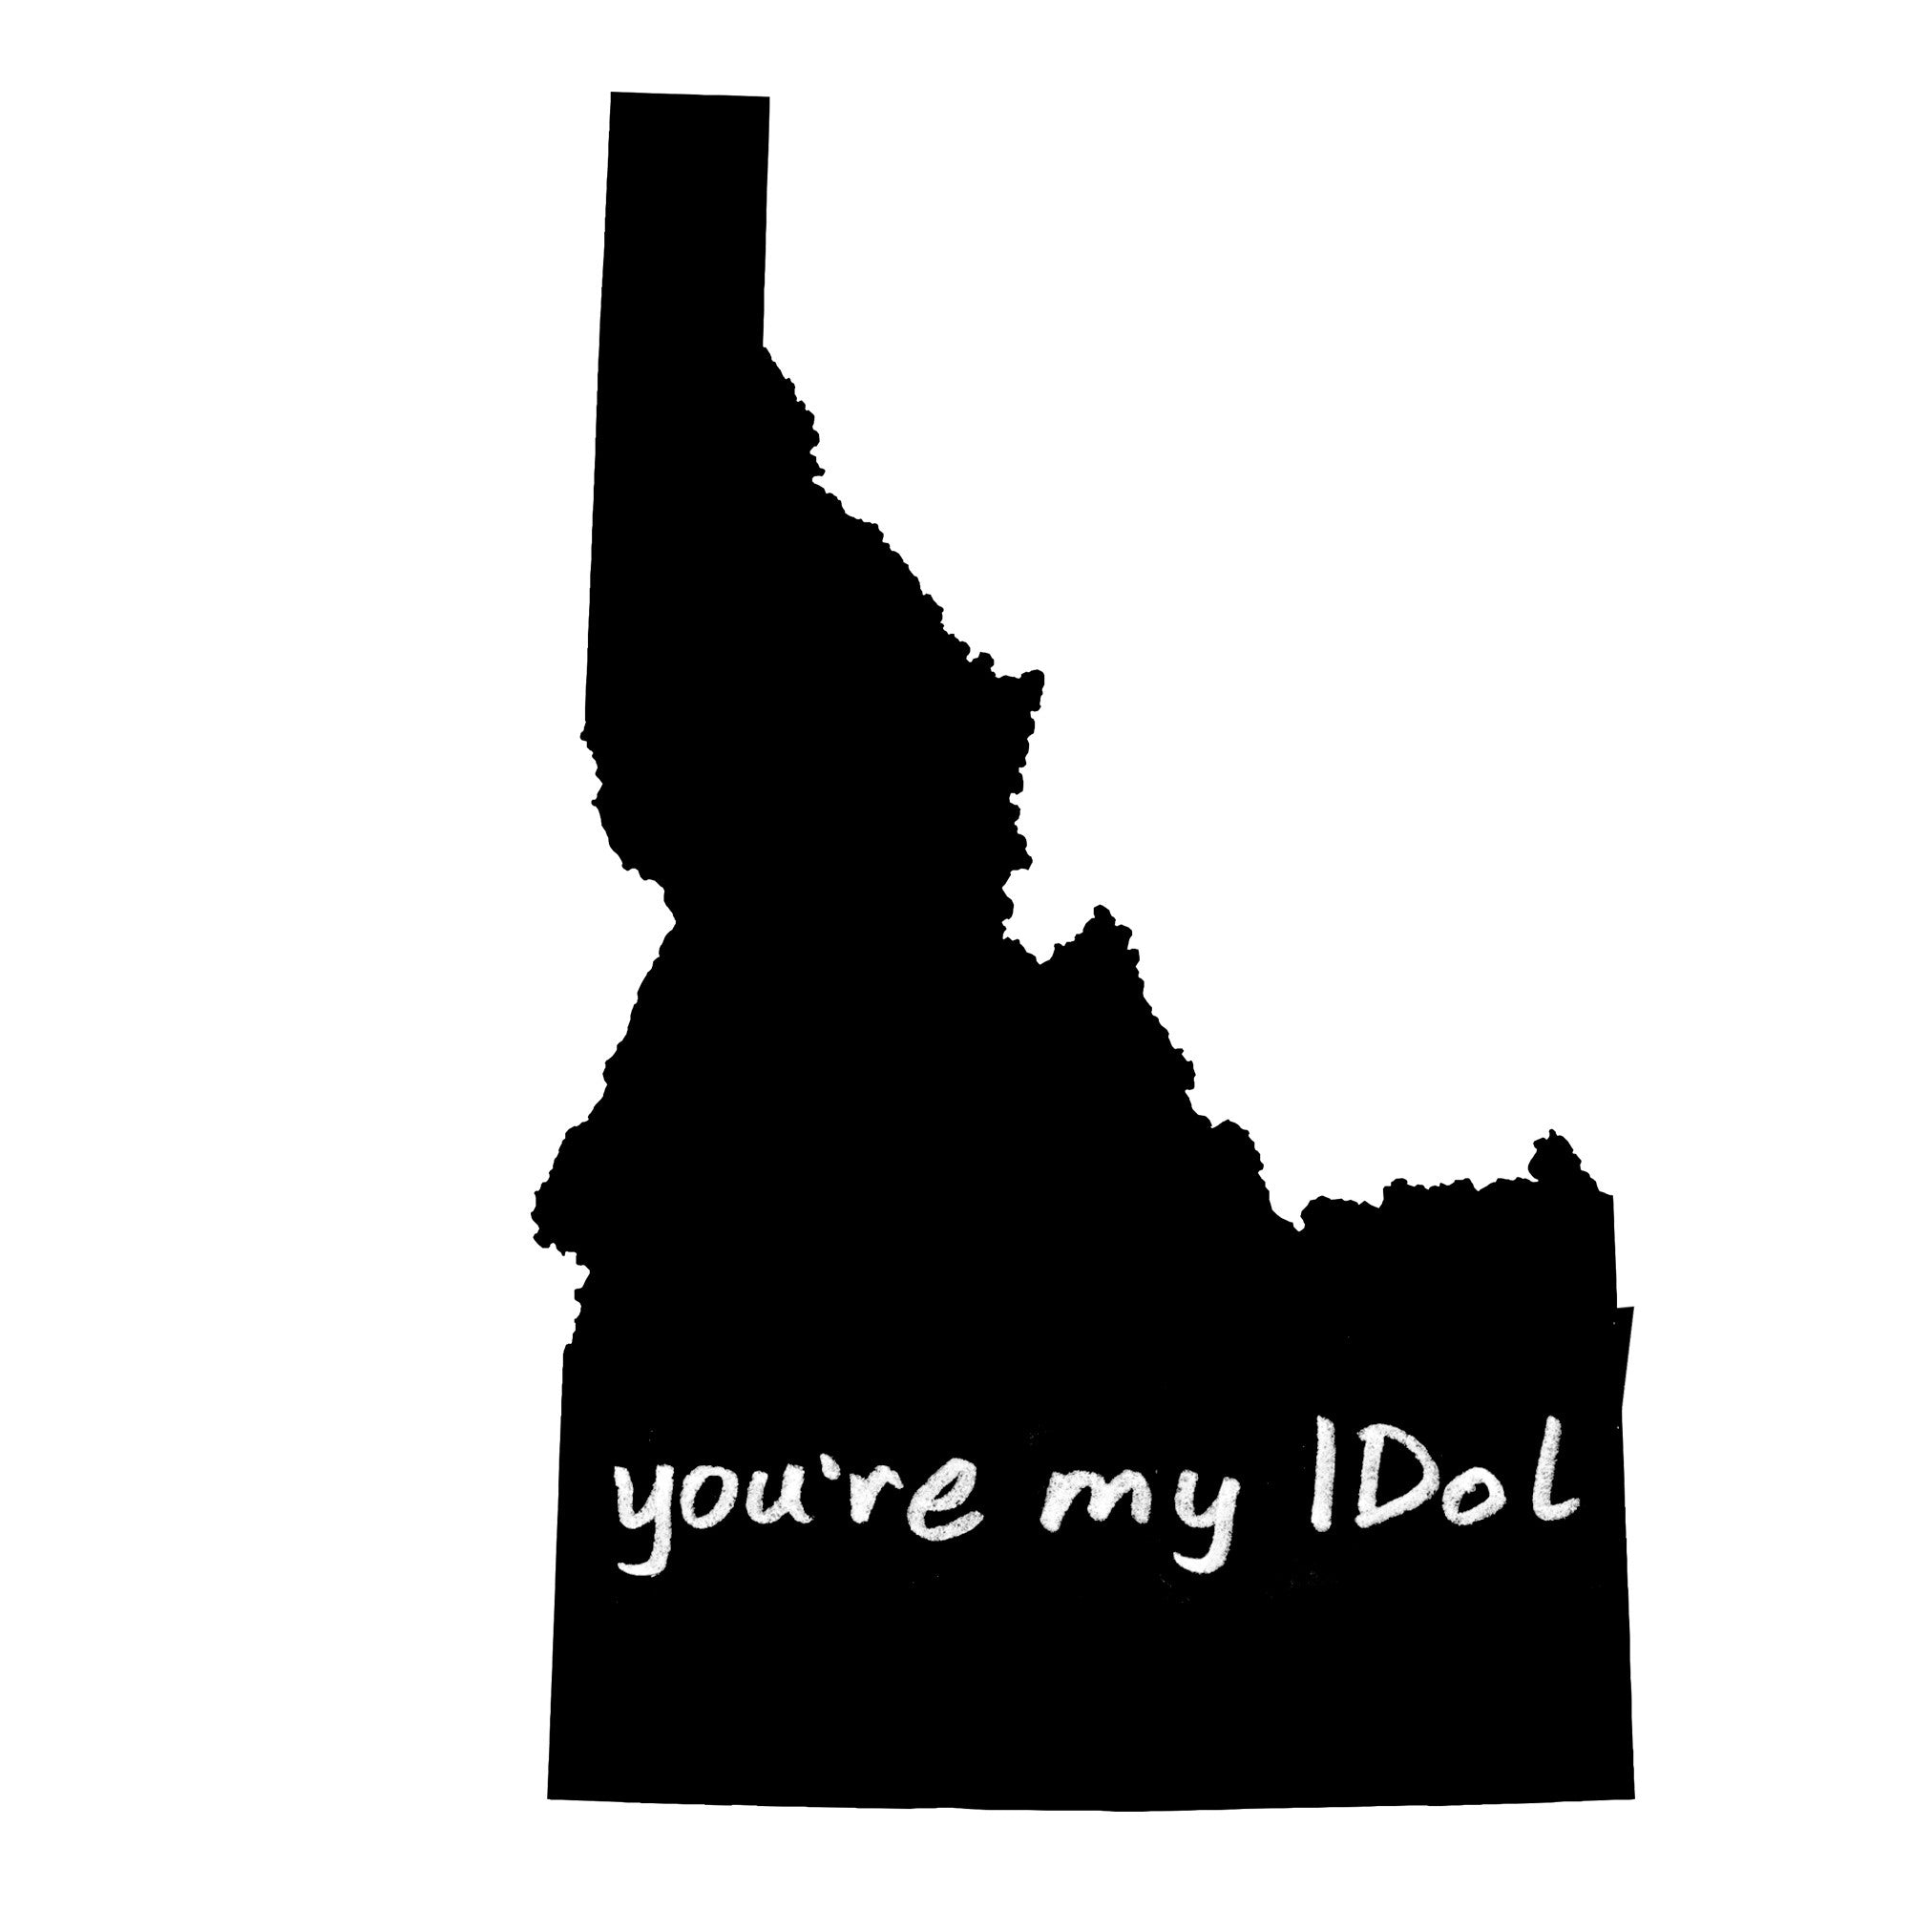 Idaho : you're my IDol unisex tri-blend tee, Unisex Apparel - Megan Lee Designs